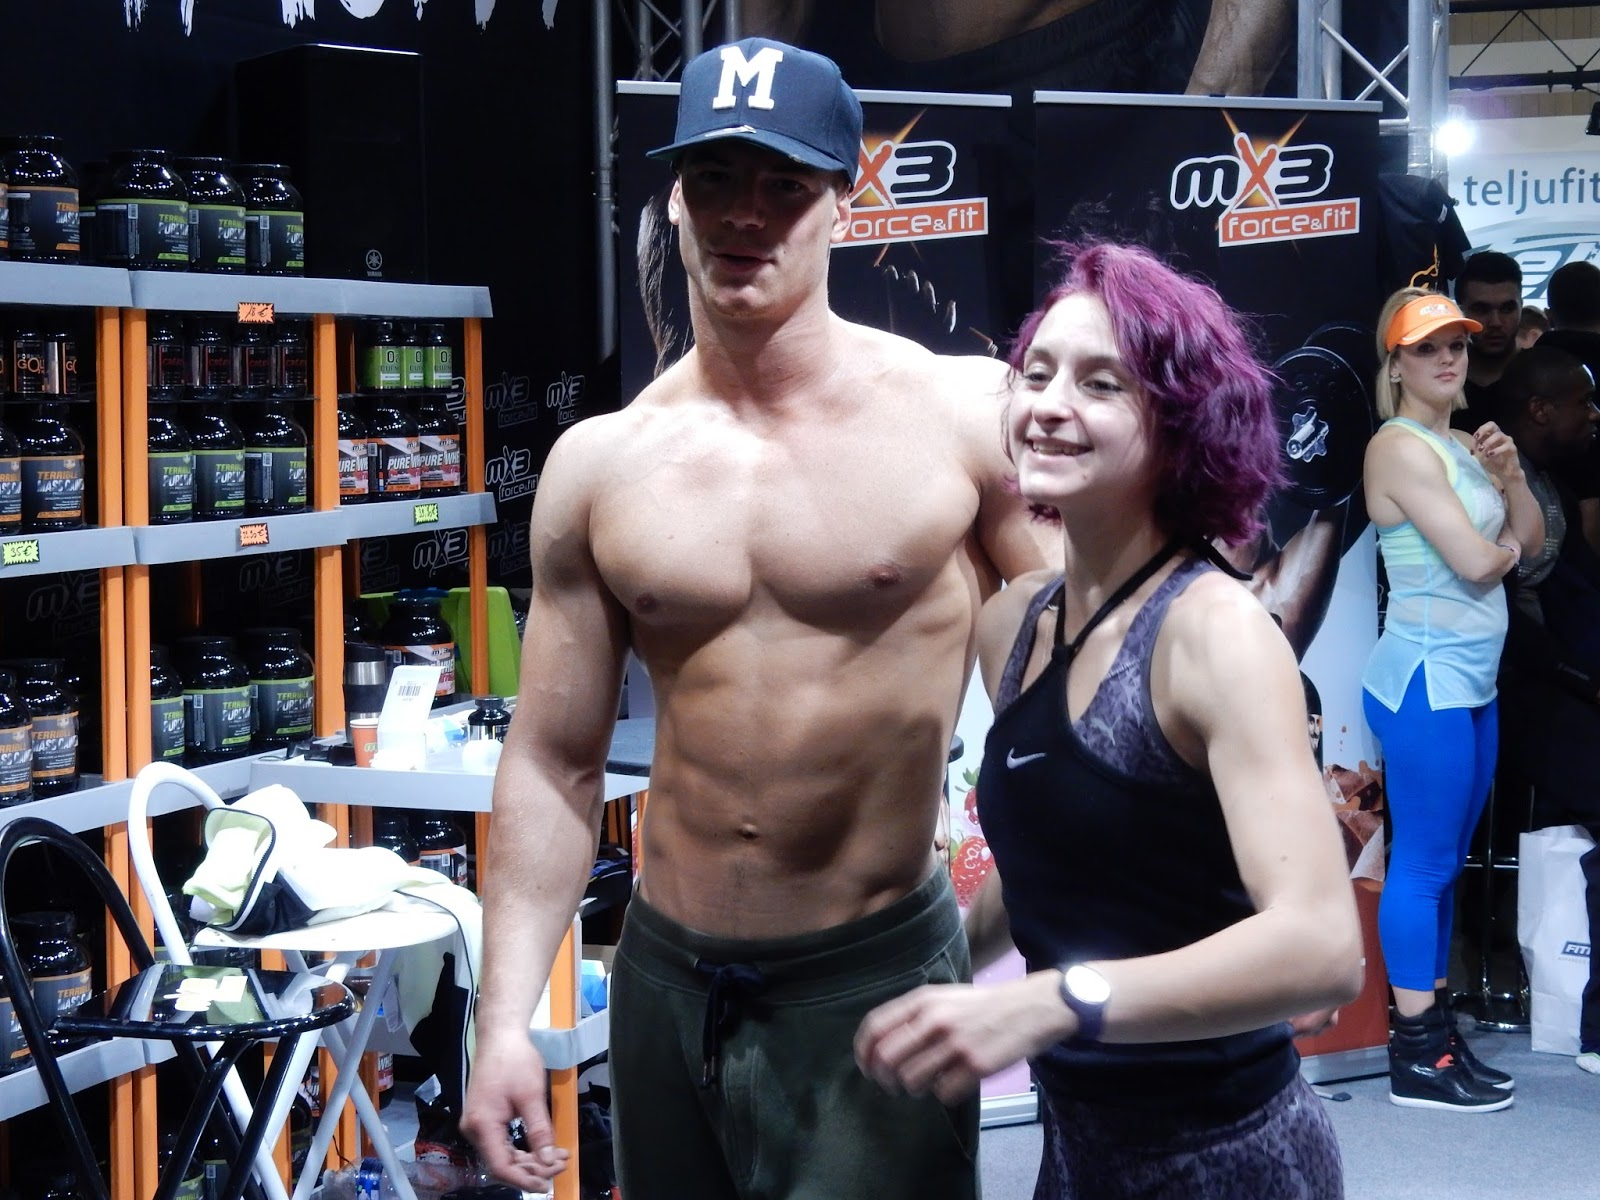 Salon Fitness Musculation Grégory Capra Au Salon Mondial Body Fitness 2016 Garde à